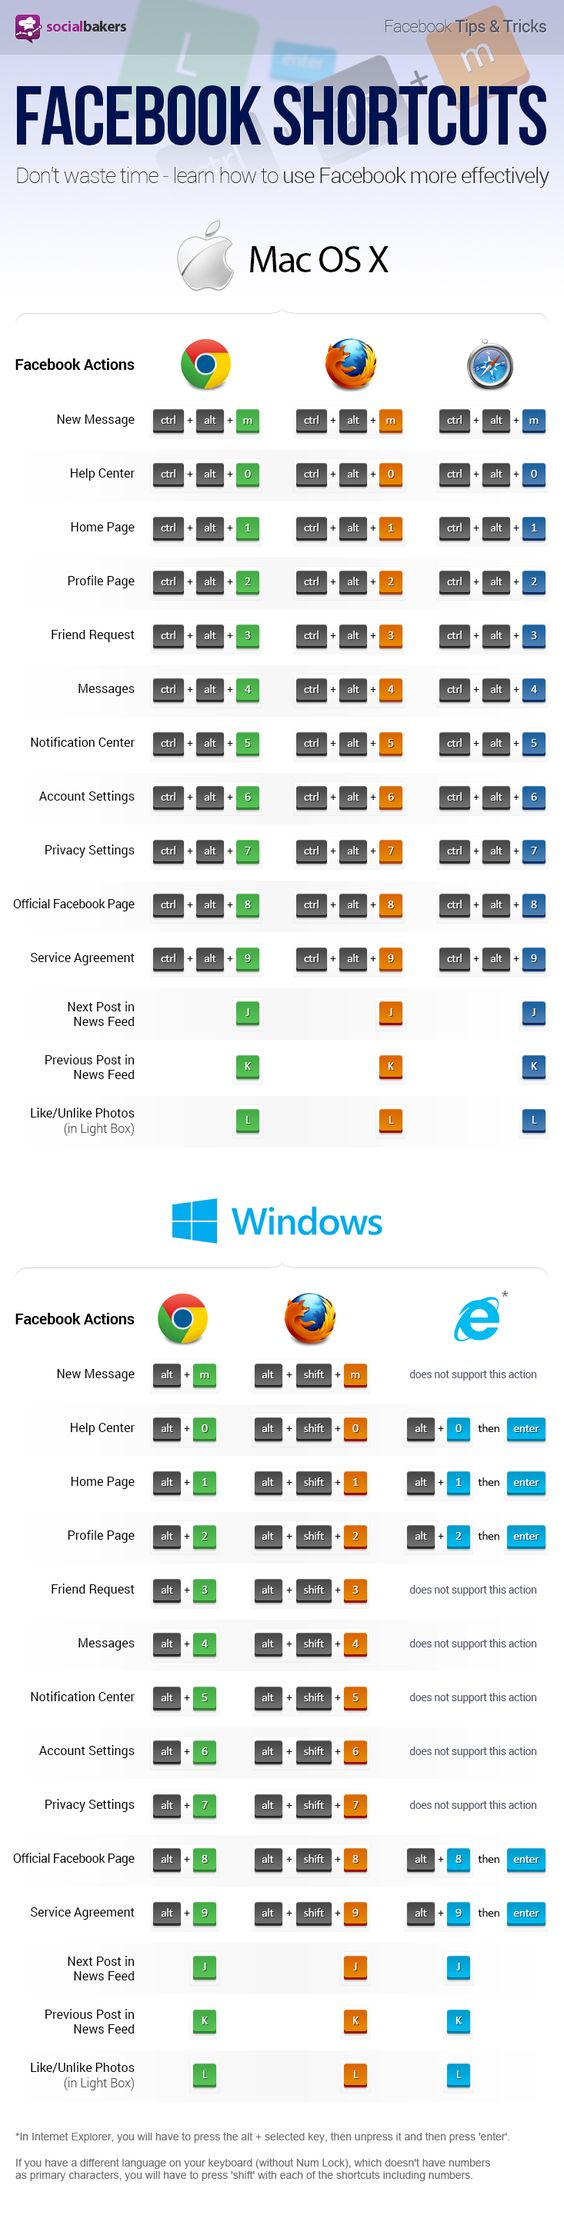 Save Time with #Facebook Shortcuts #Infographic  #RePin by AT Social Media Marketing - Pinterest Marketing Specialists ATSocialMedia.co.uk